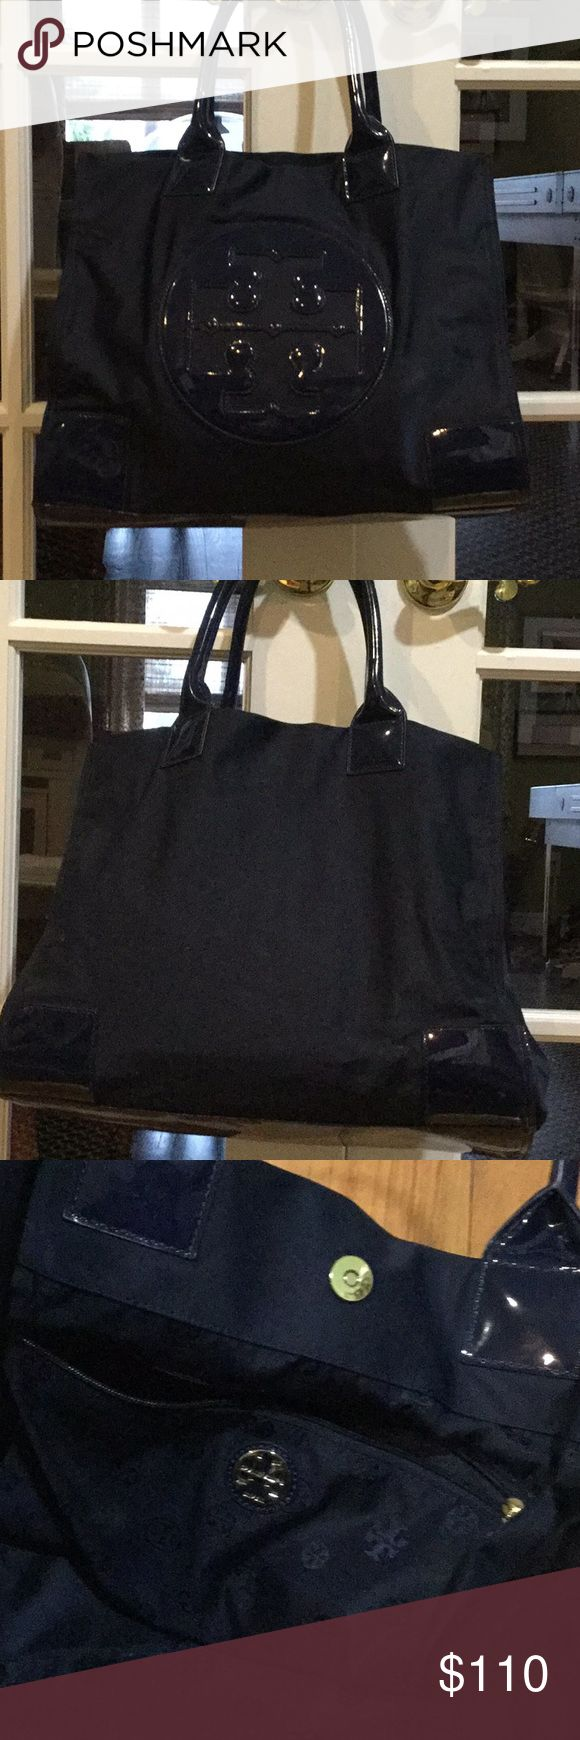 Tory Burch nylon tote bag Tory Burch French blue  nylon tote. Excellent condition. Interior zipper and side compartments for phone etc. Tory Burch Bags Totes